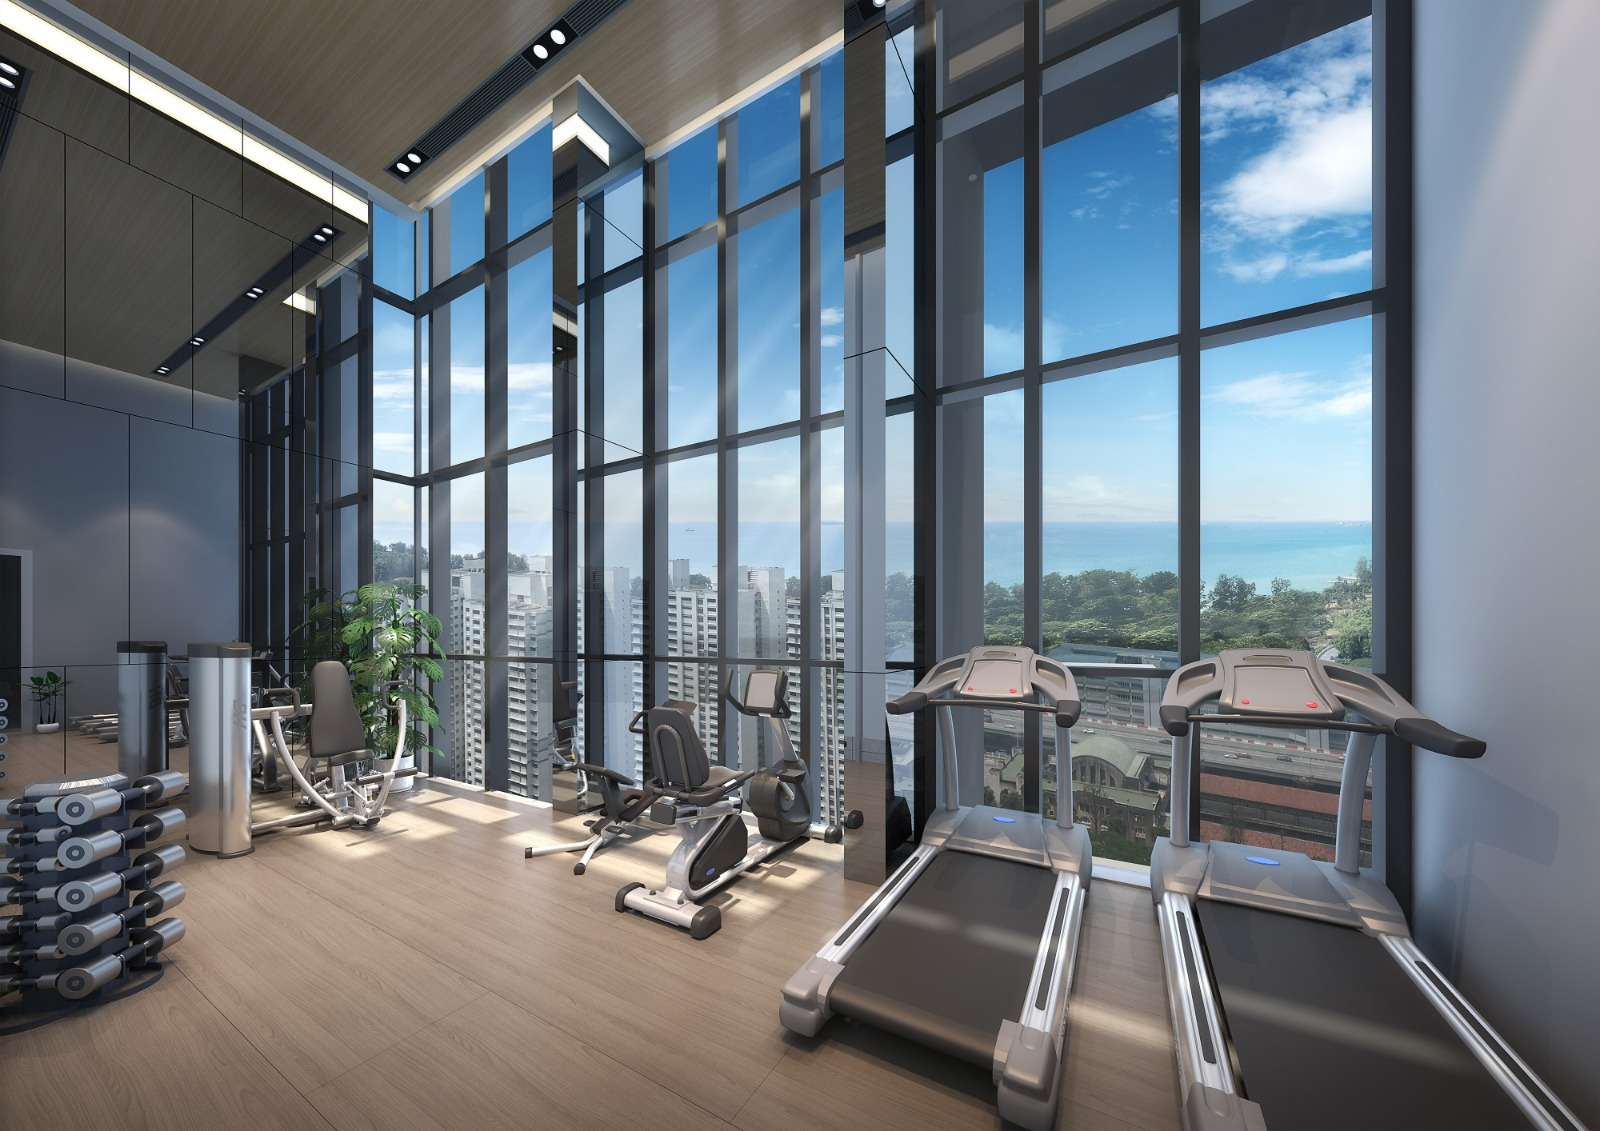 Sky Everton Condo View from Gym